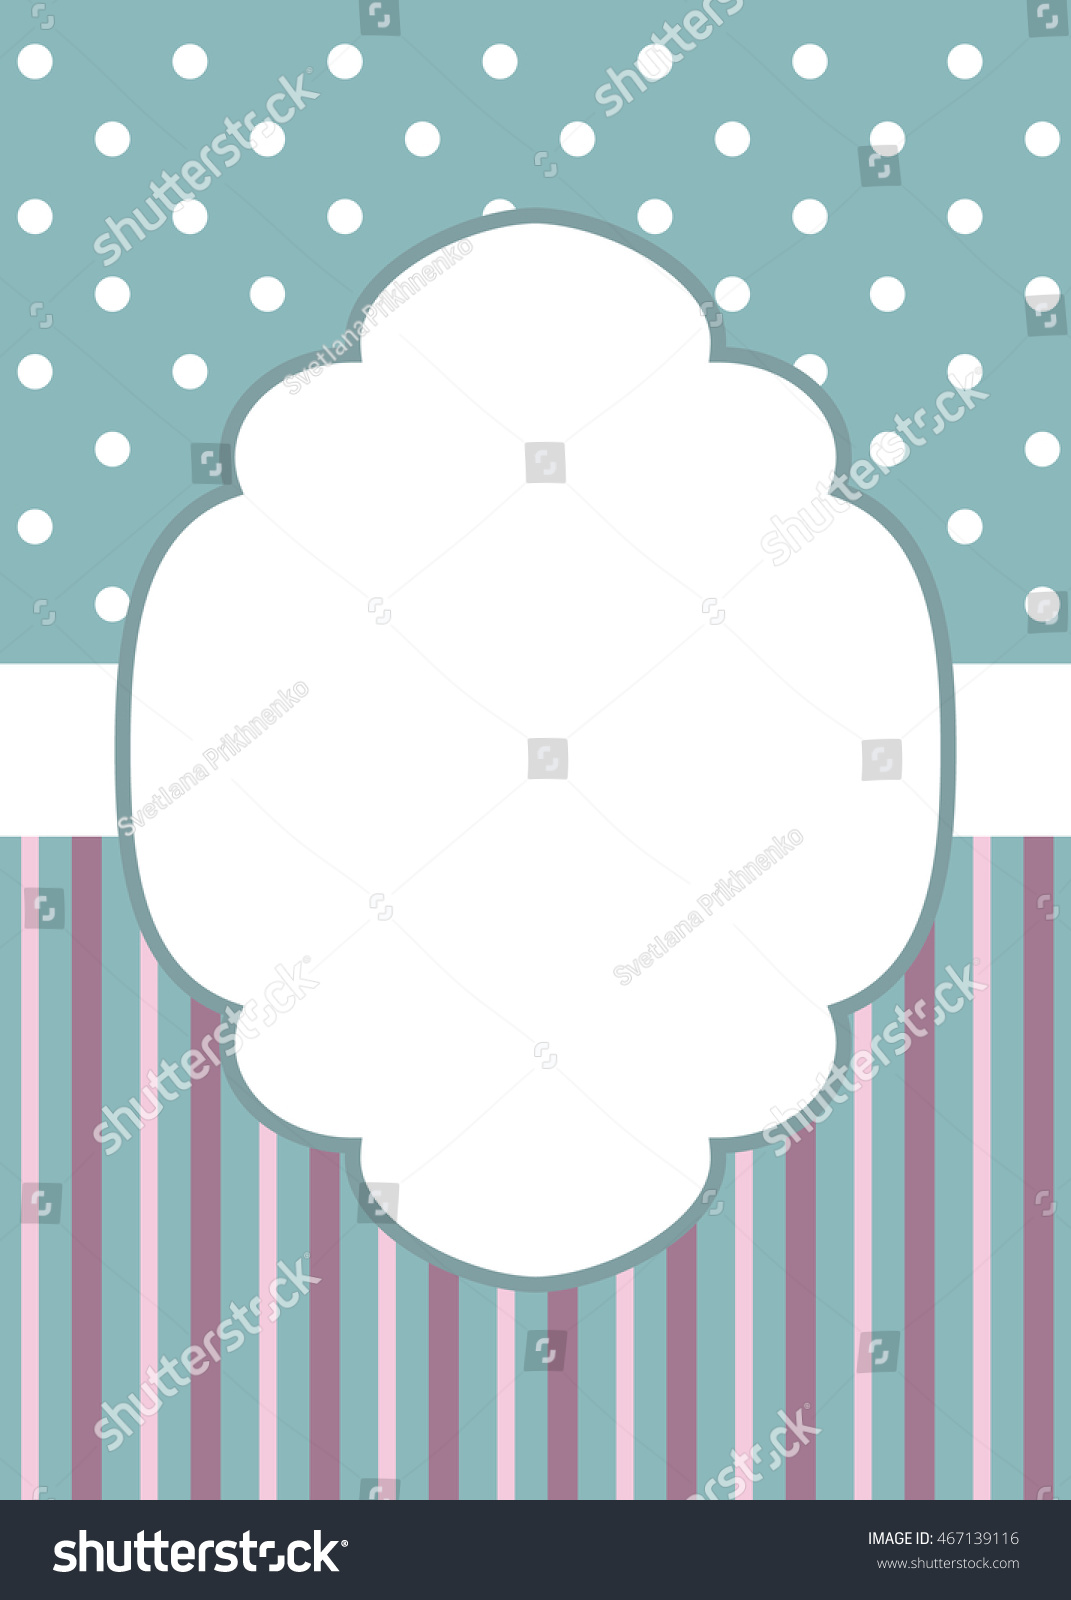 greeting card template stripes polka dotのイラスト素材 467139116